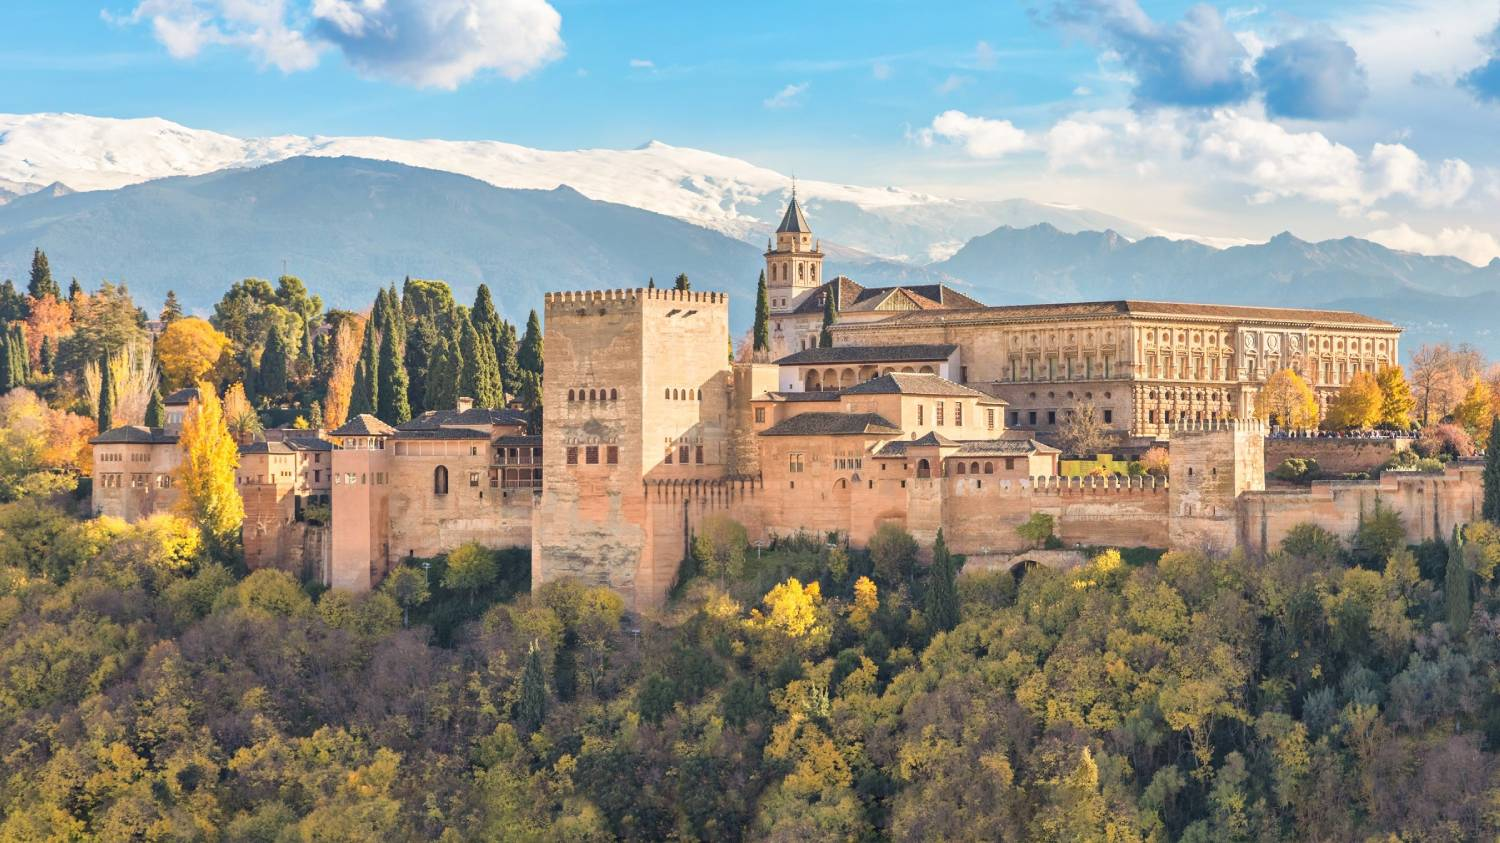 The Alhambra - Things To Do In Granada